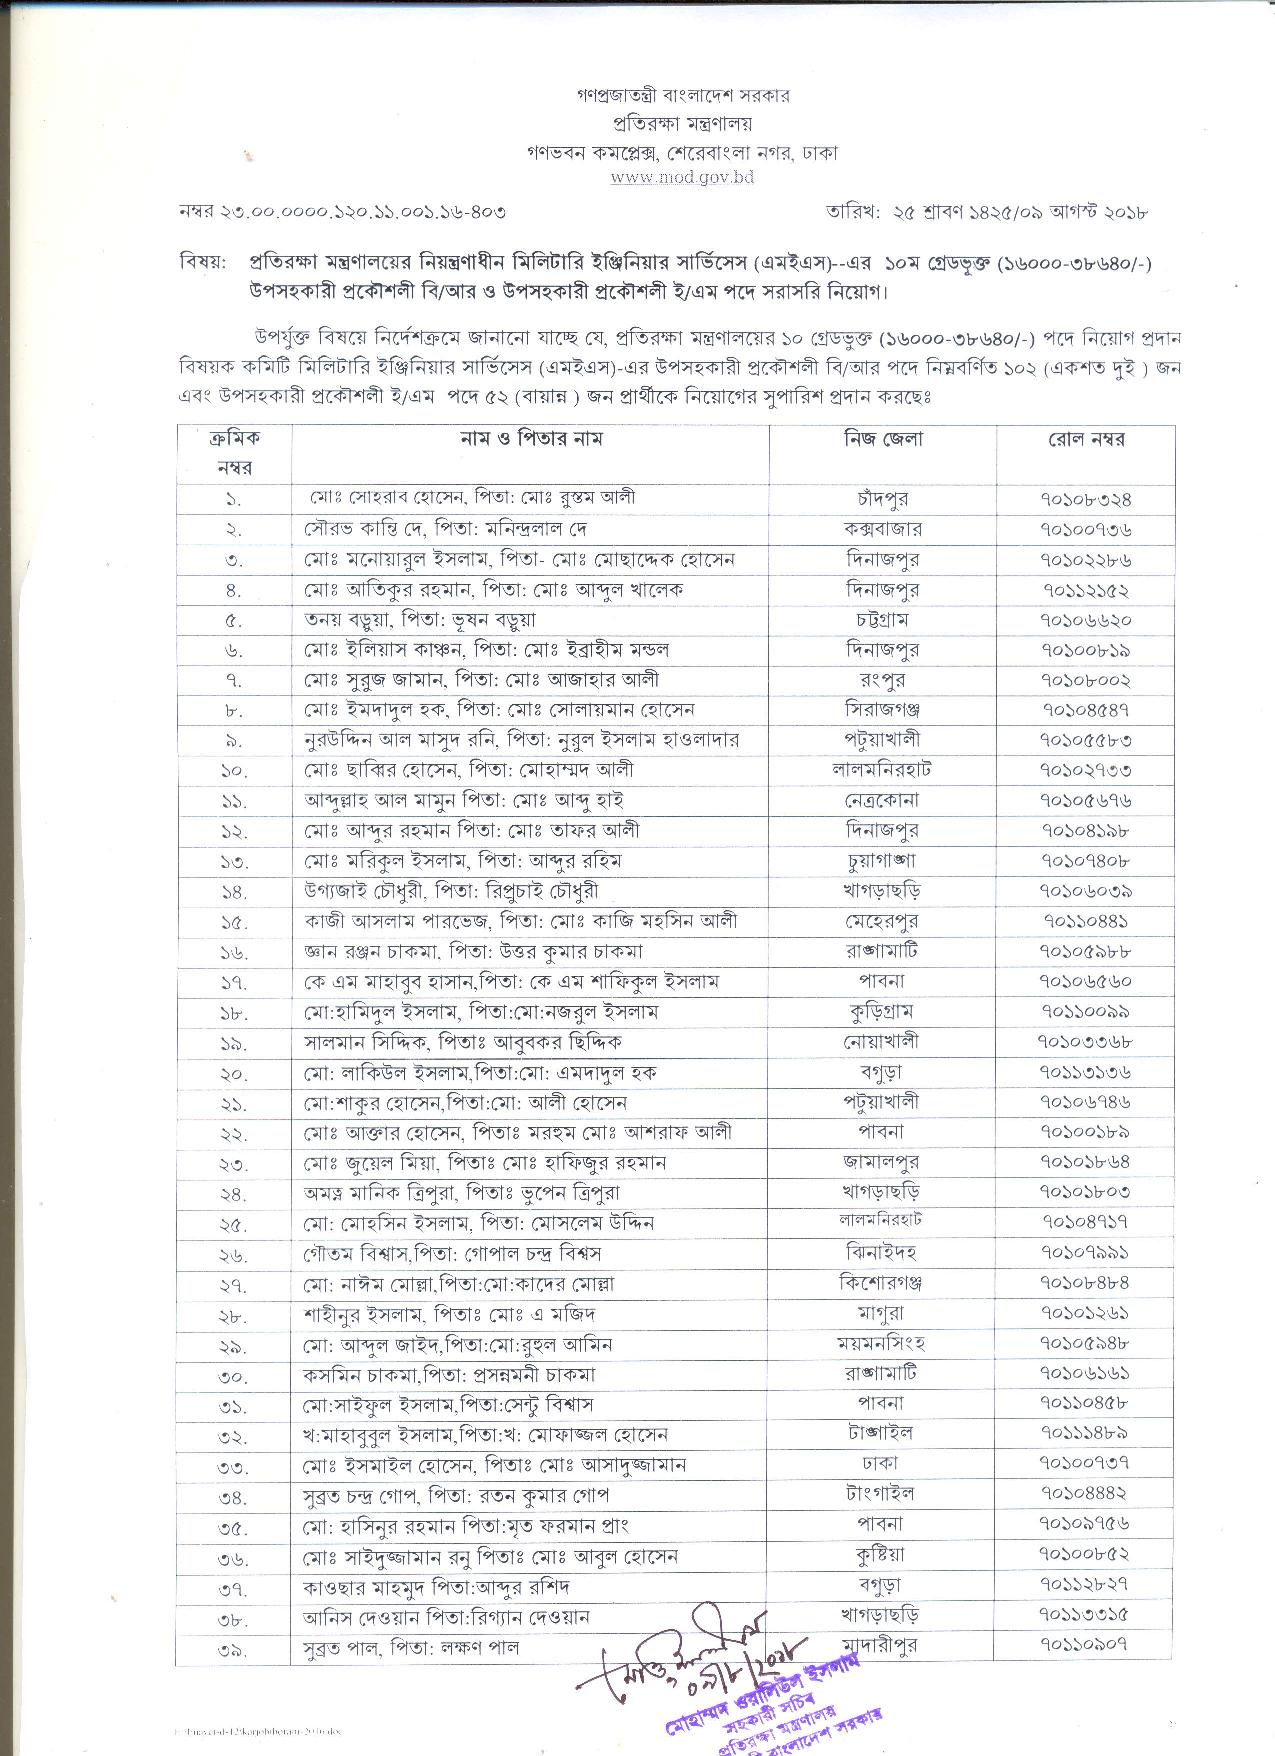 Ministry of Defense MOD Exam Result 2018 by dailyjobsbd